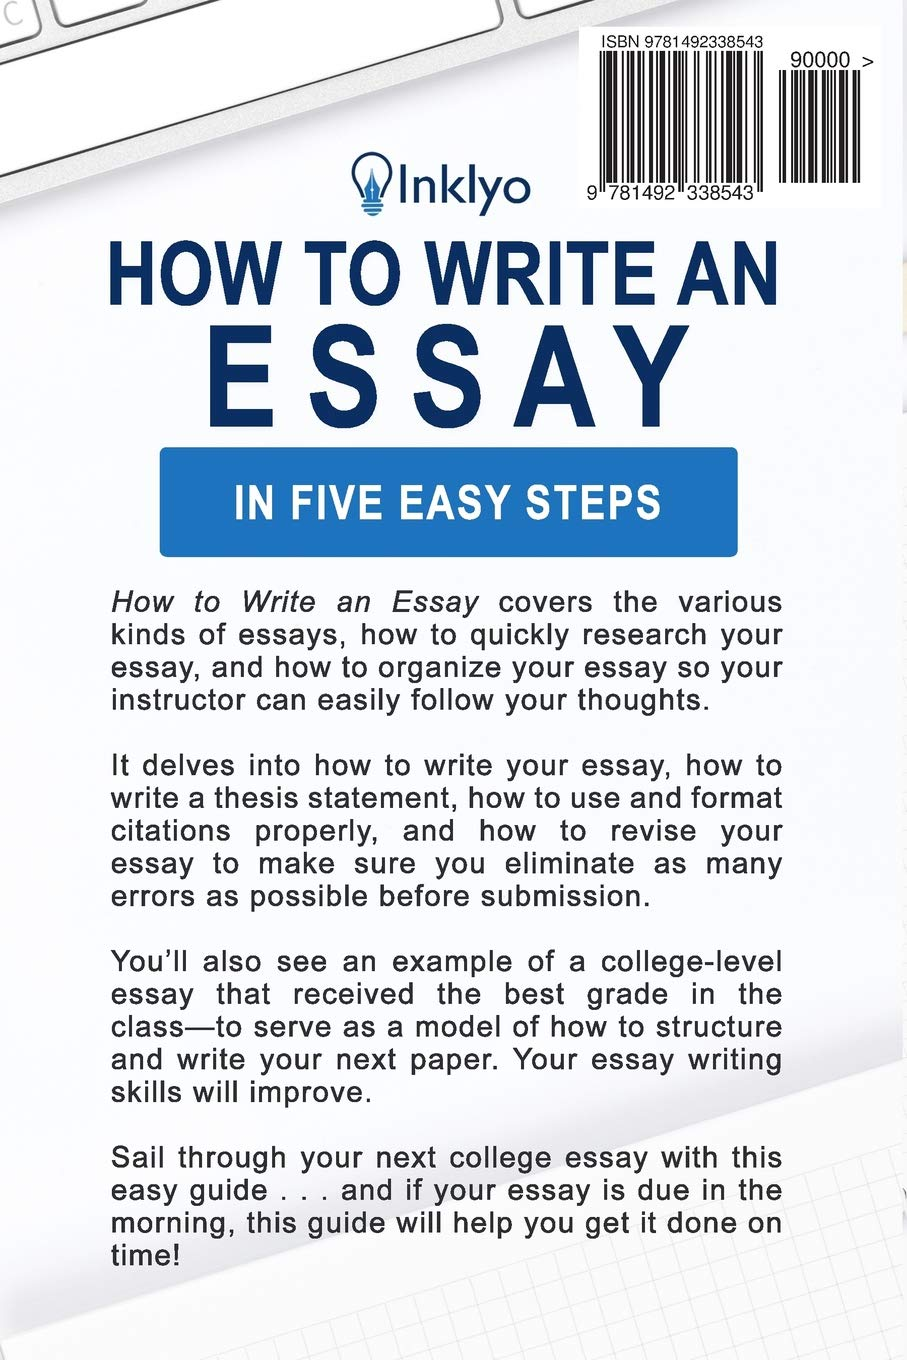 013 Essay Example 71v7ckw5pll Writing Striking A Creative About Yourself College Outline 5 Steps To Full